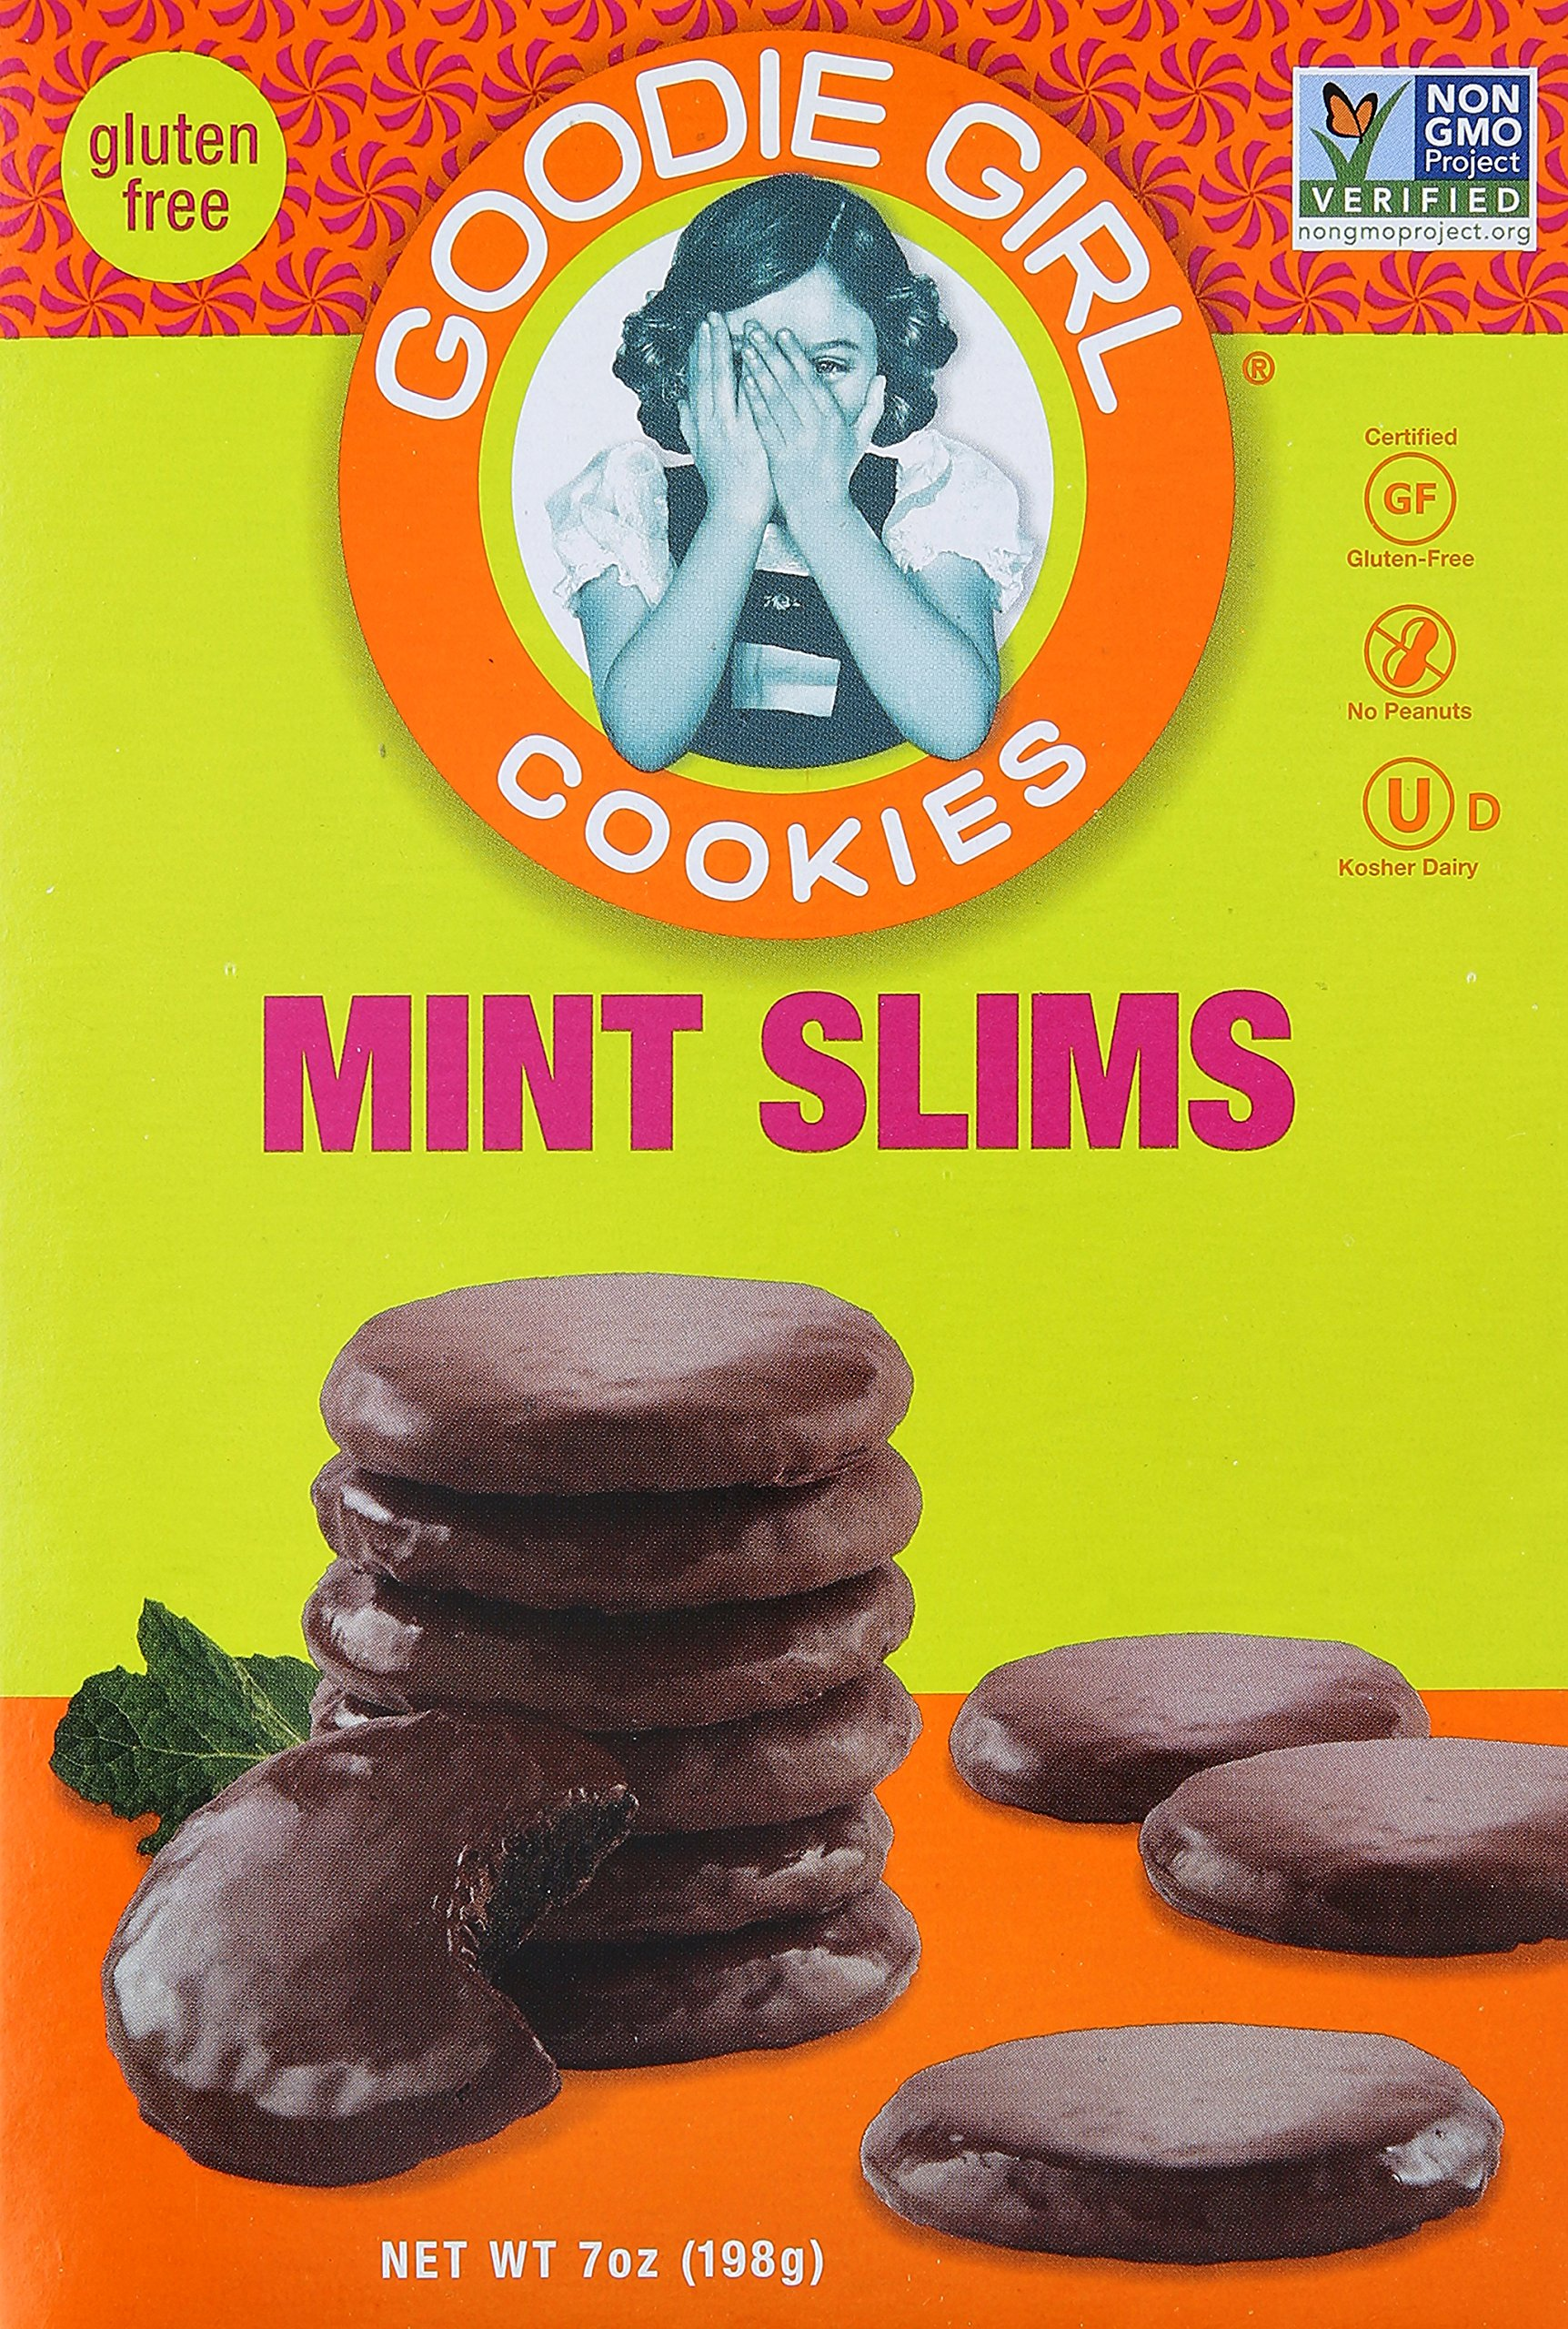 Goodie Girl Cookie Mint Slim, 7 Ounce, 1 Box (Pack of 2) by Goodie Girl